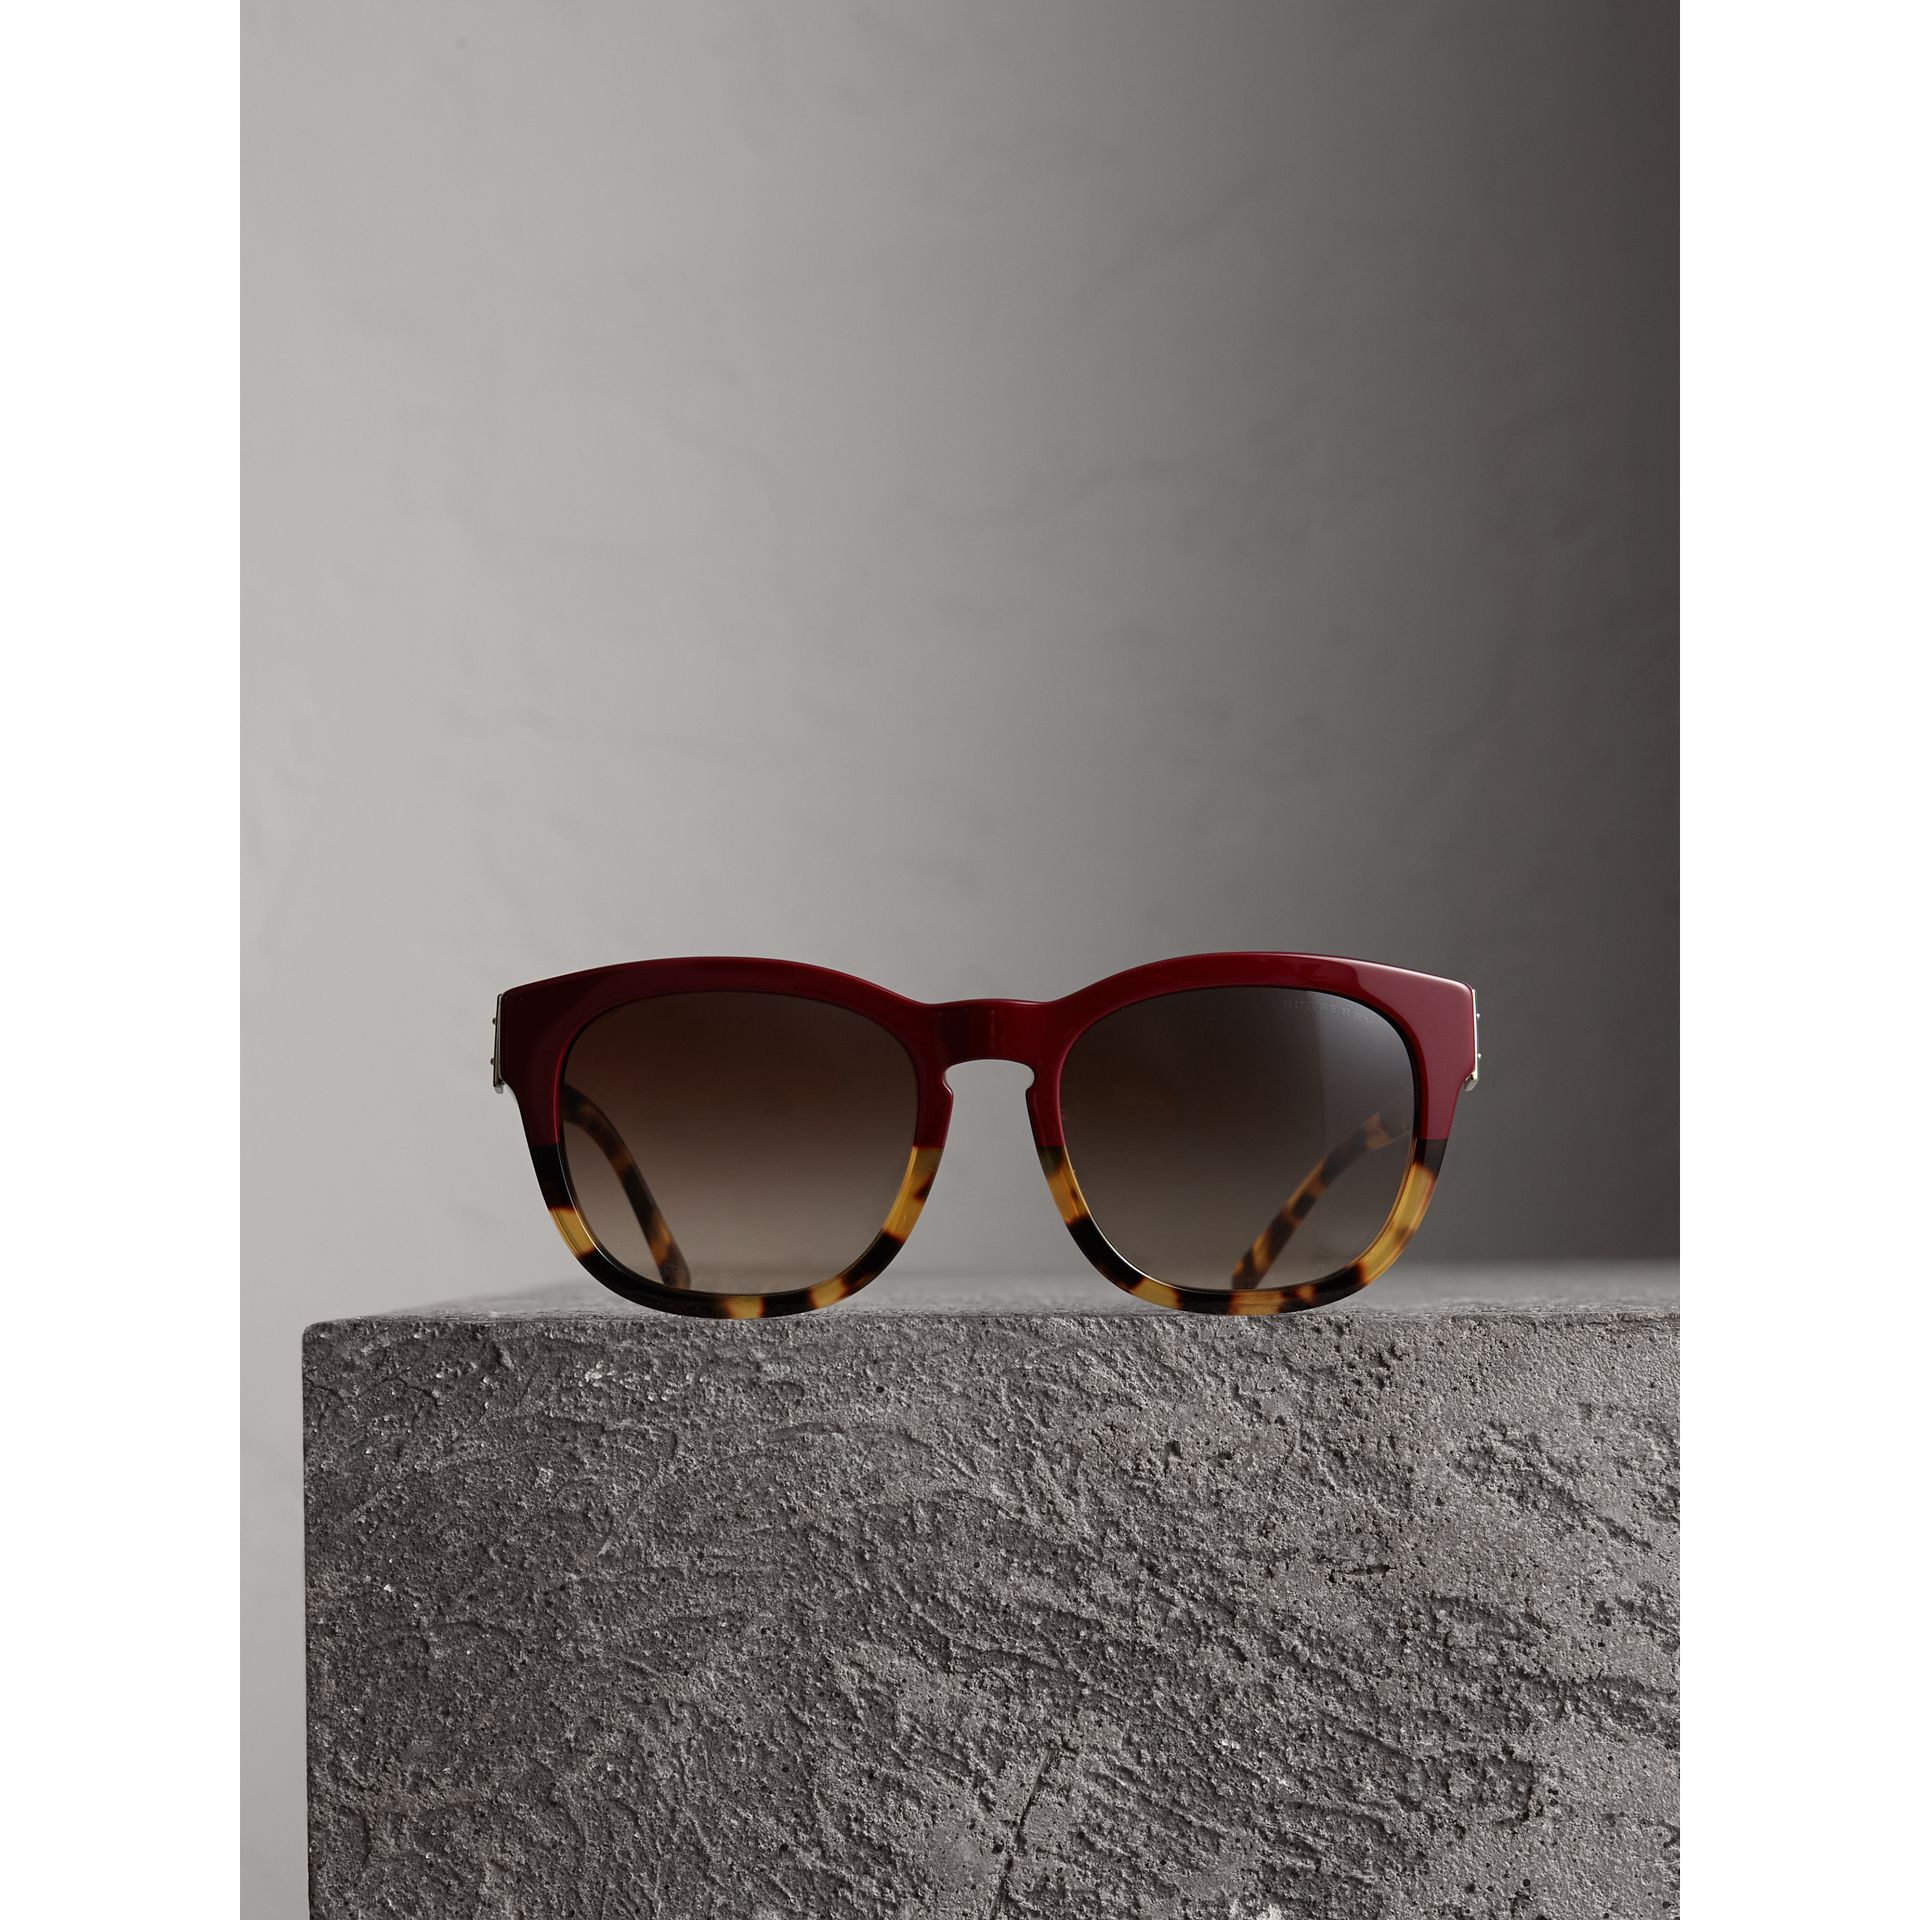 Buckle Detail Square Frame Sunglasses in Burgundy - Women | Burberry Canada - gallery image 3